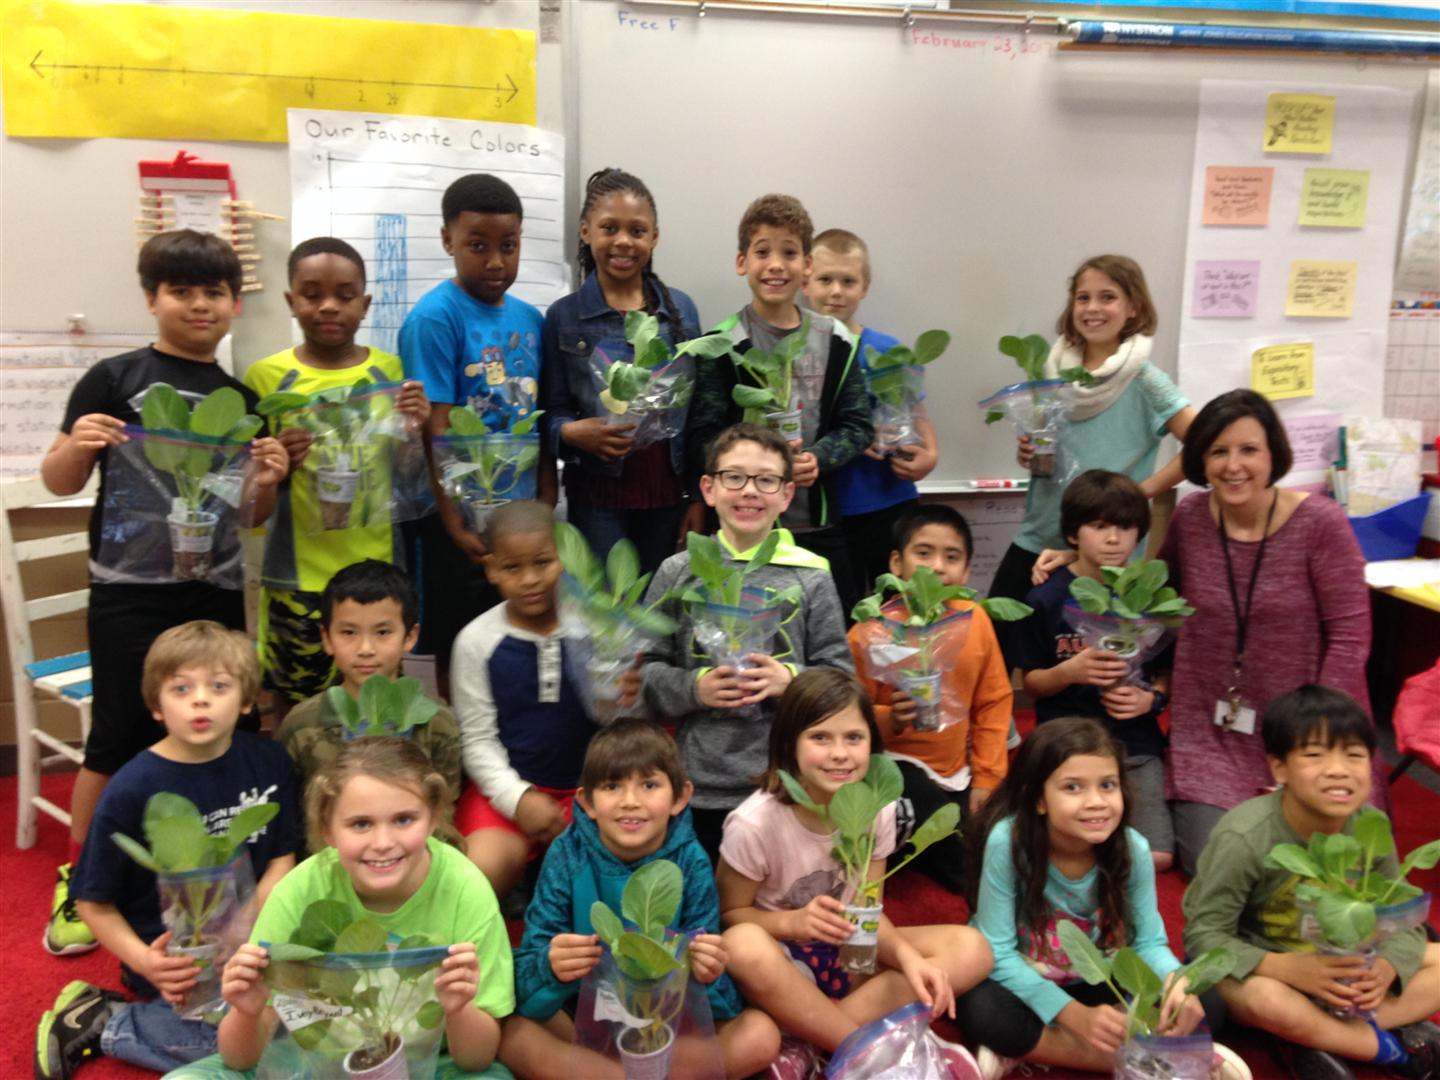 Mrs. Marcum's 3rd grade class receives mega cabbage plants from Bonnie Plants as part of the 3rd Grade Cabbage Program.